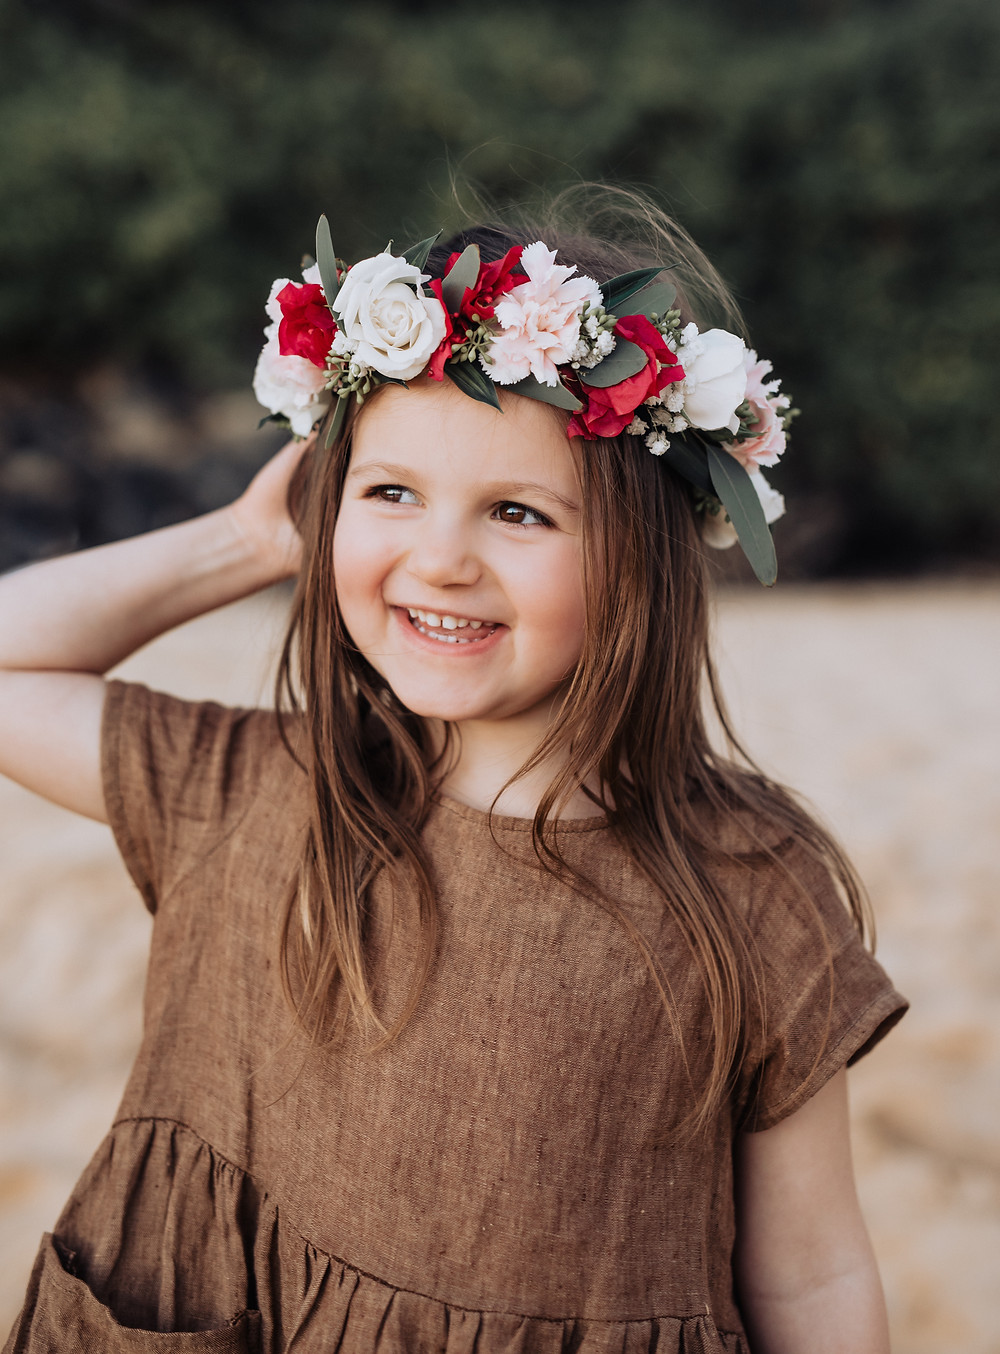 Little girl smiling with a flower lei in her hair.